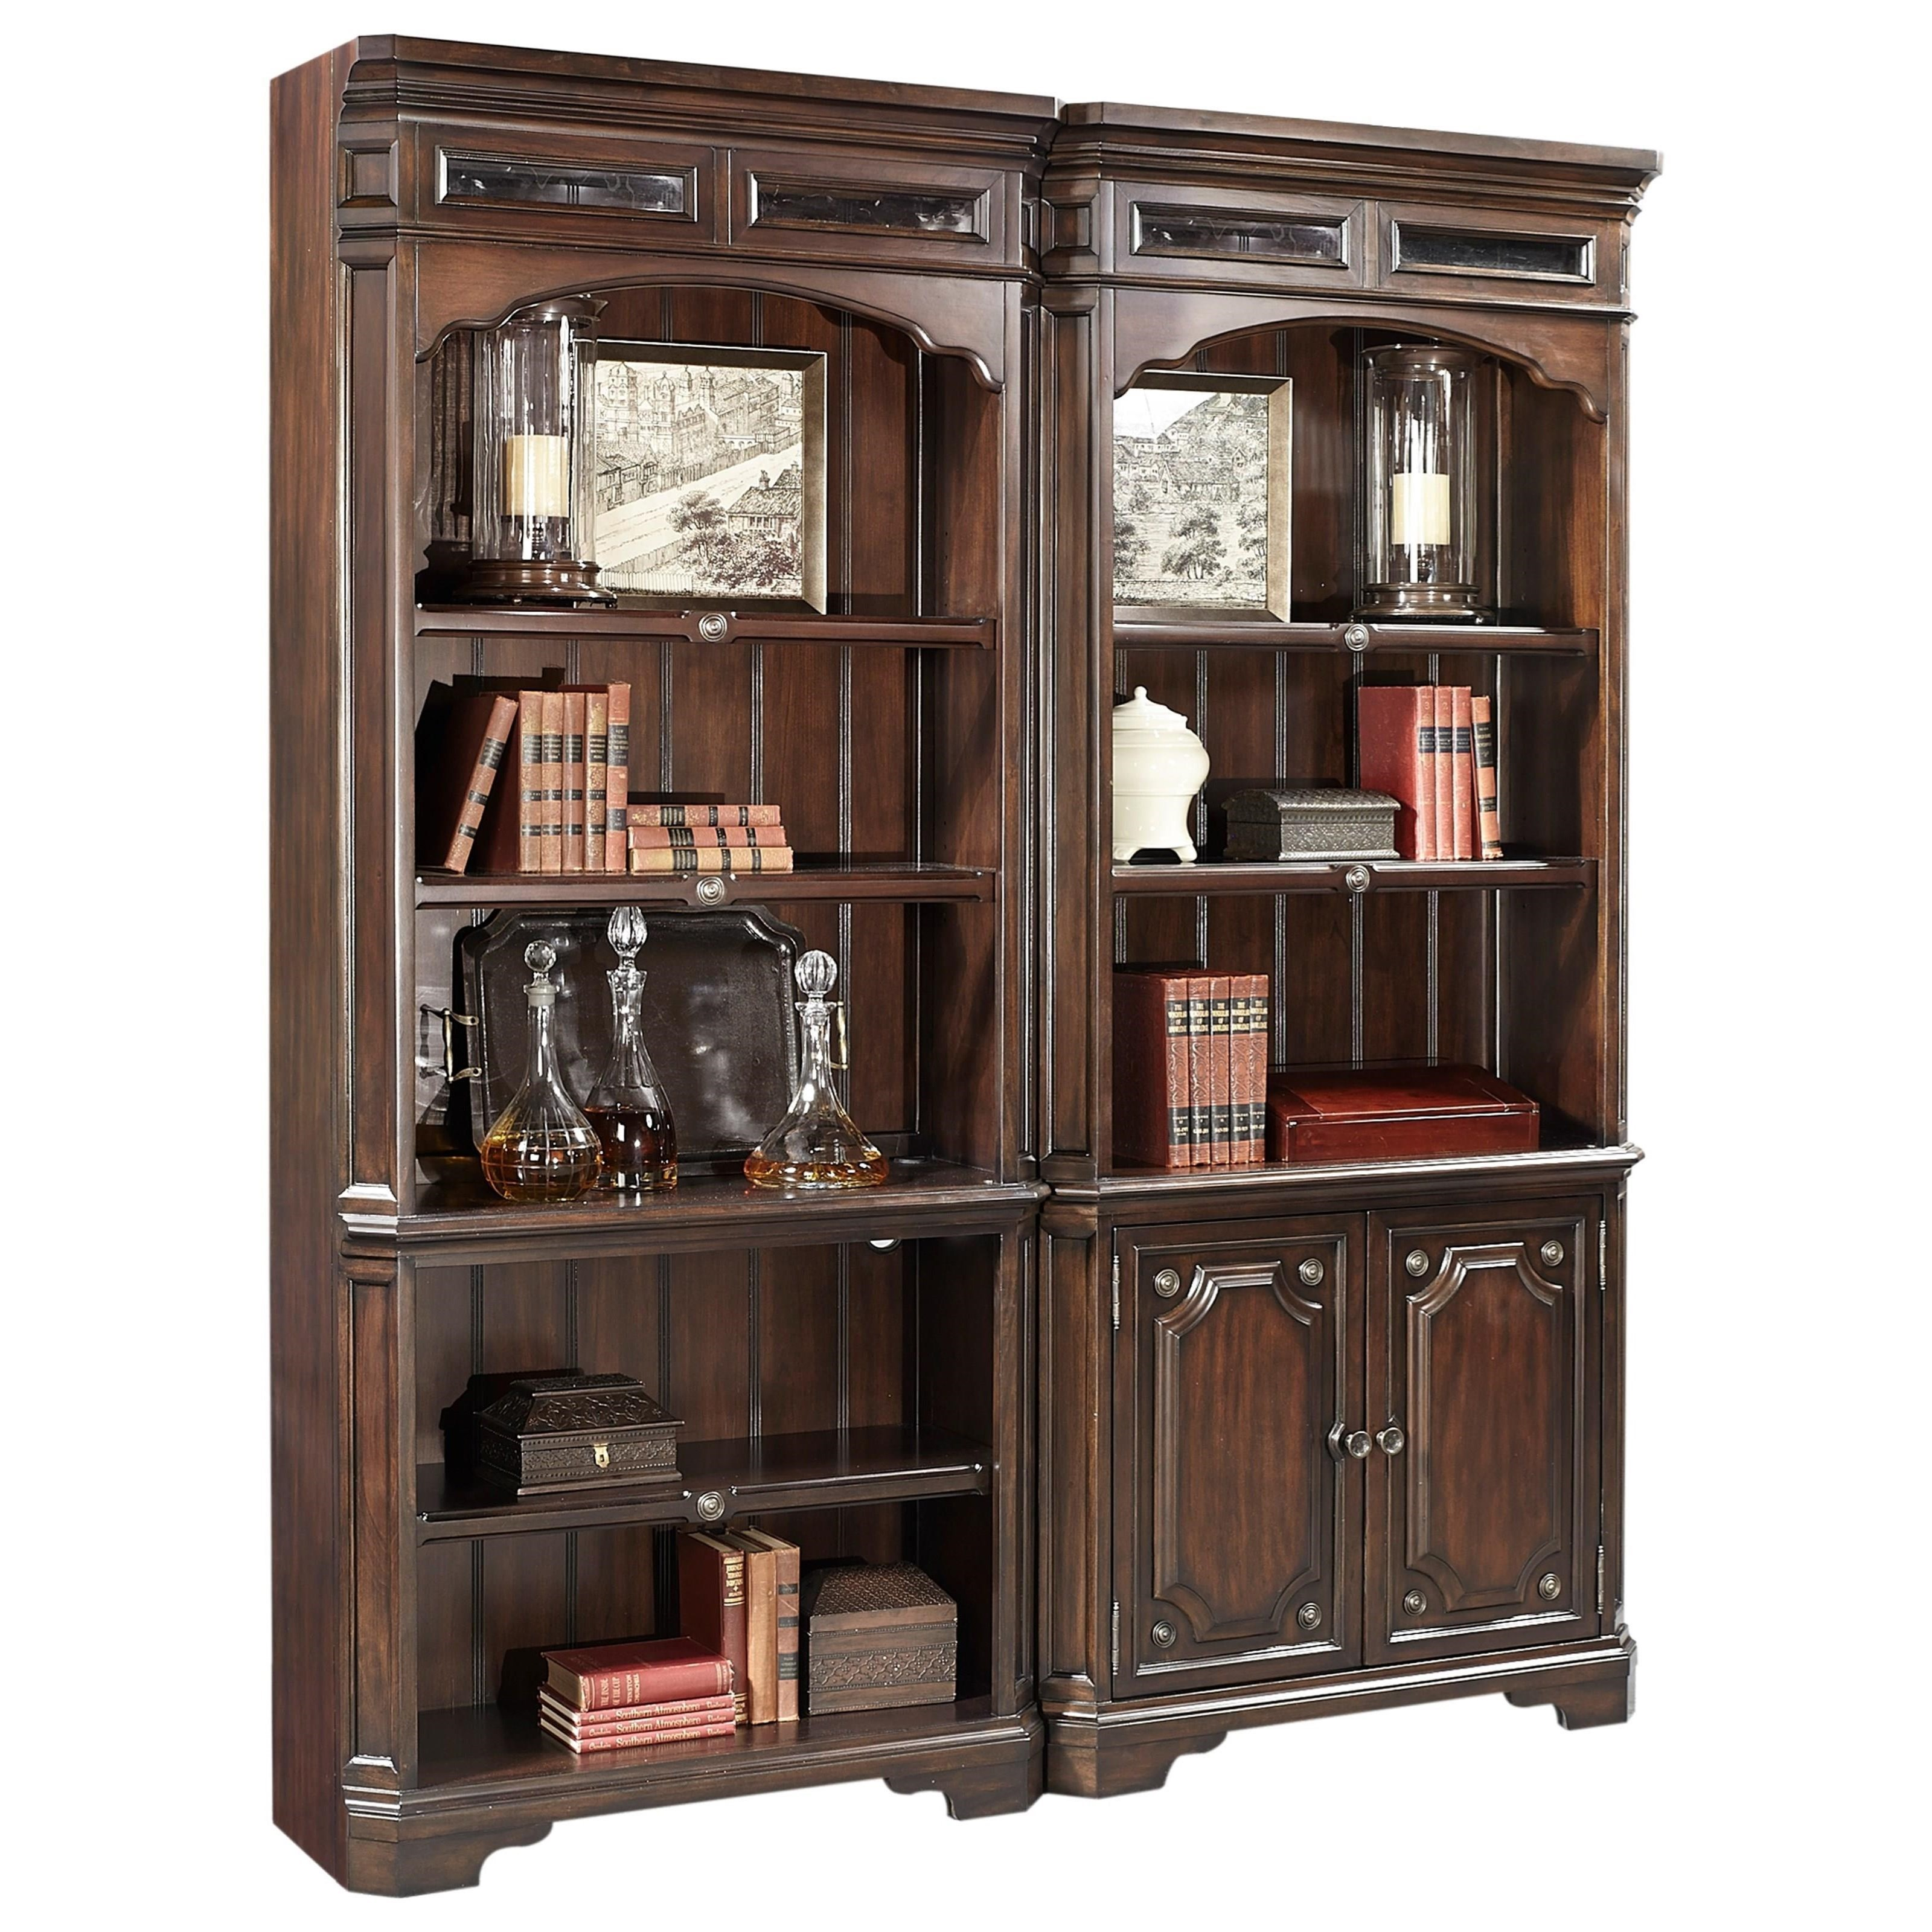 Sheffield Door Bookcase  by Aspenhome at Walker's Furniture